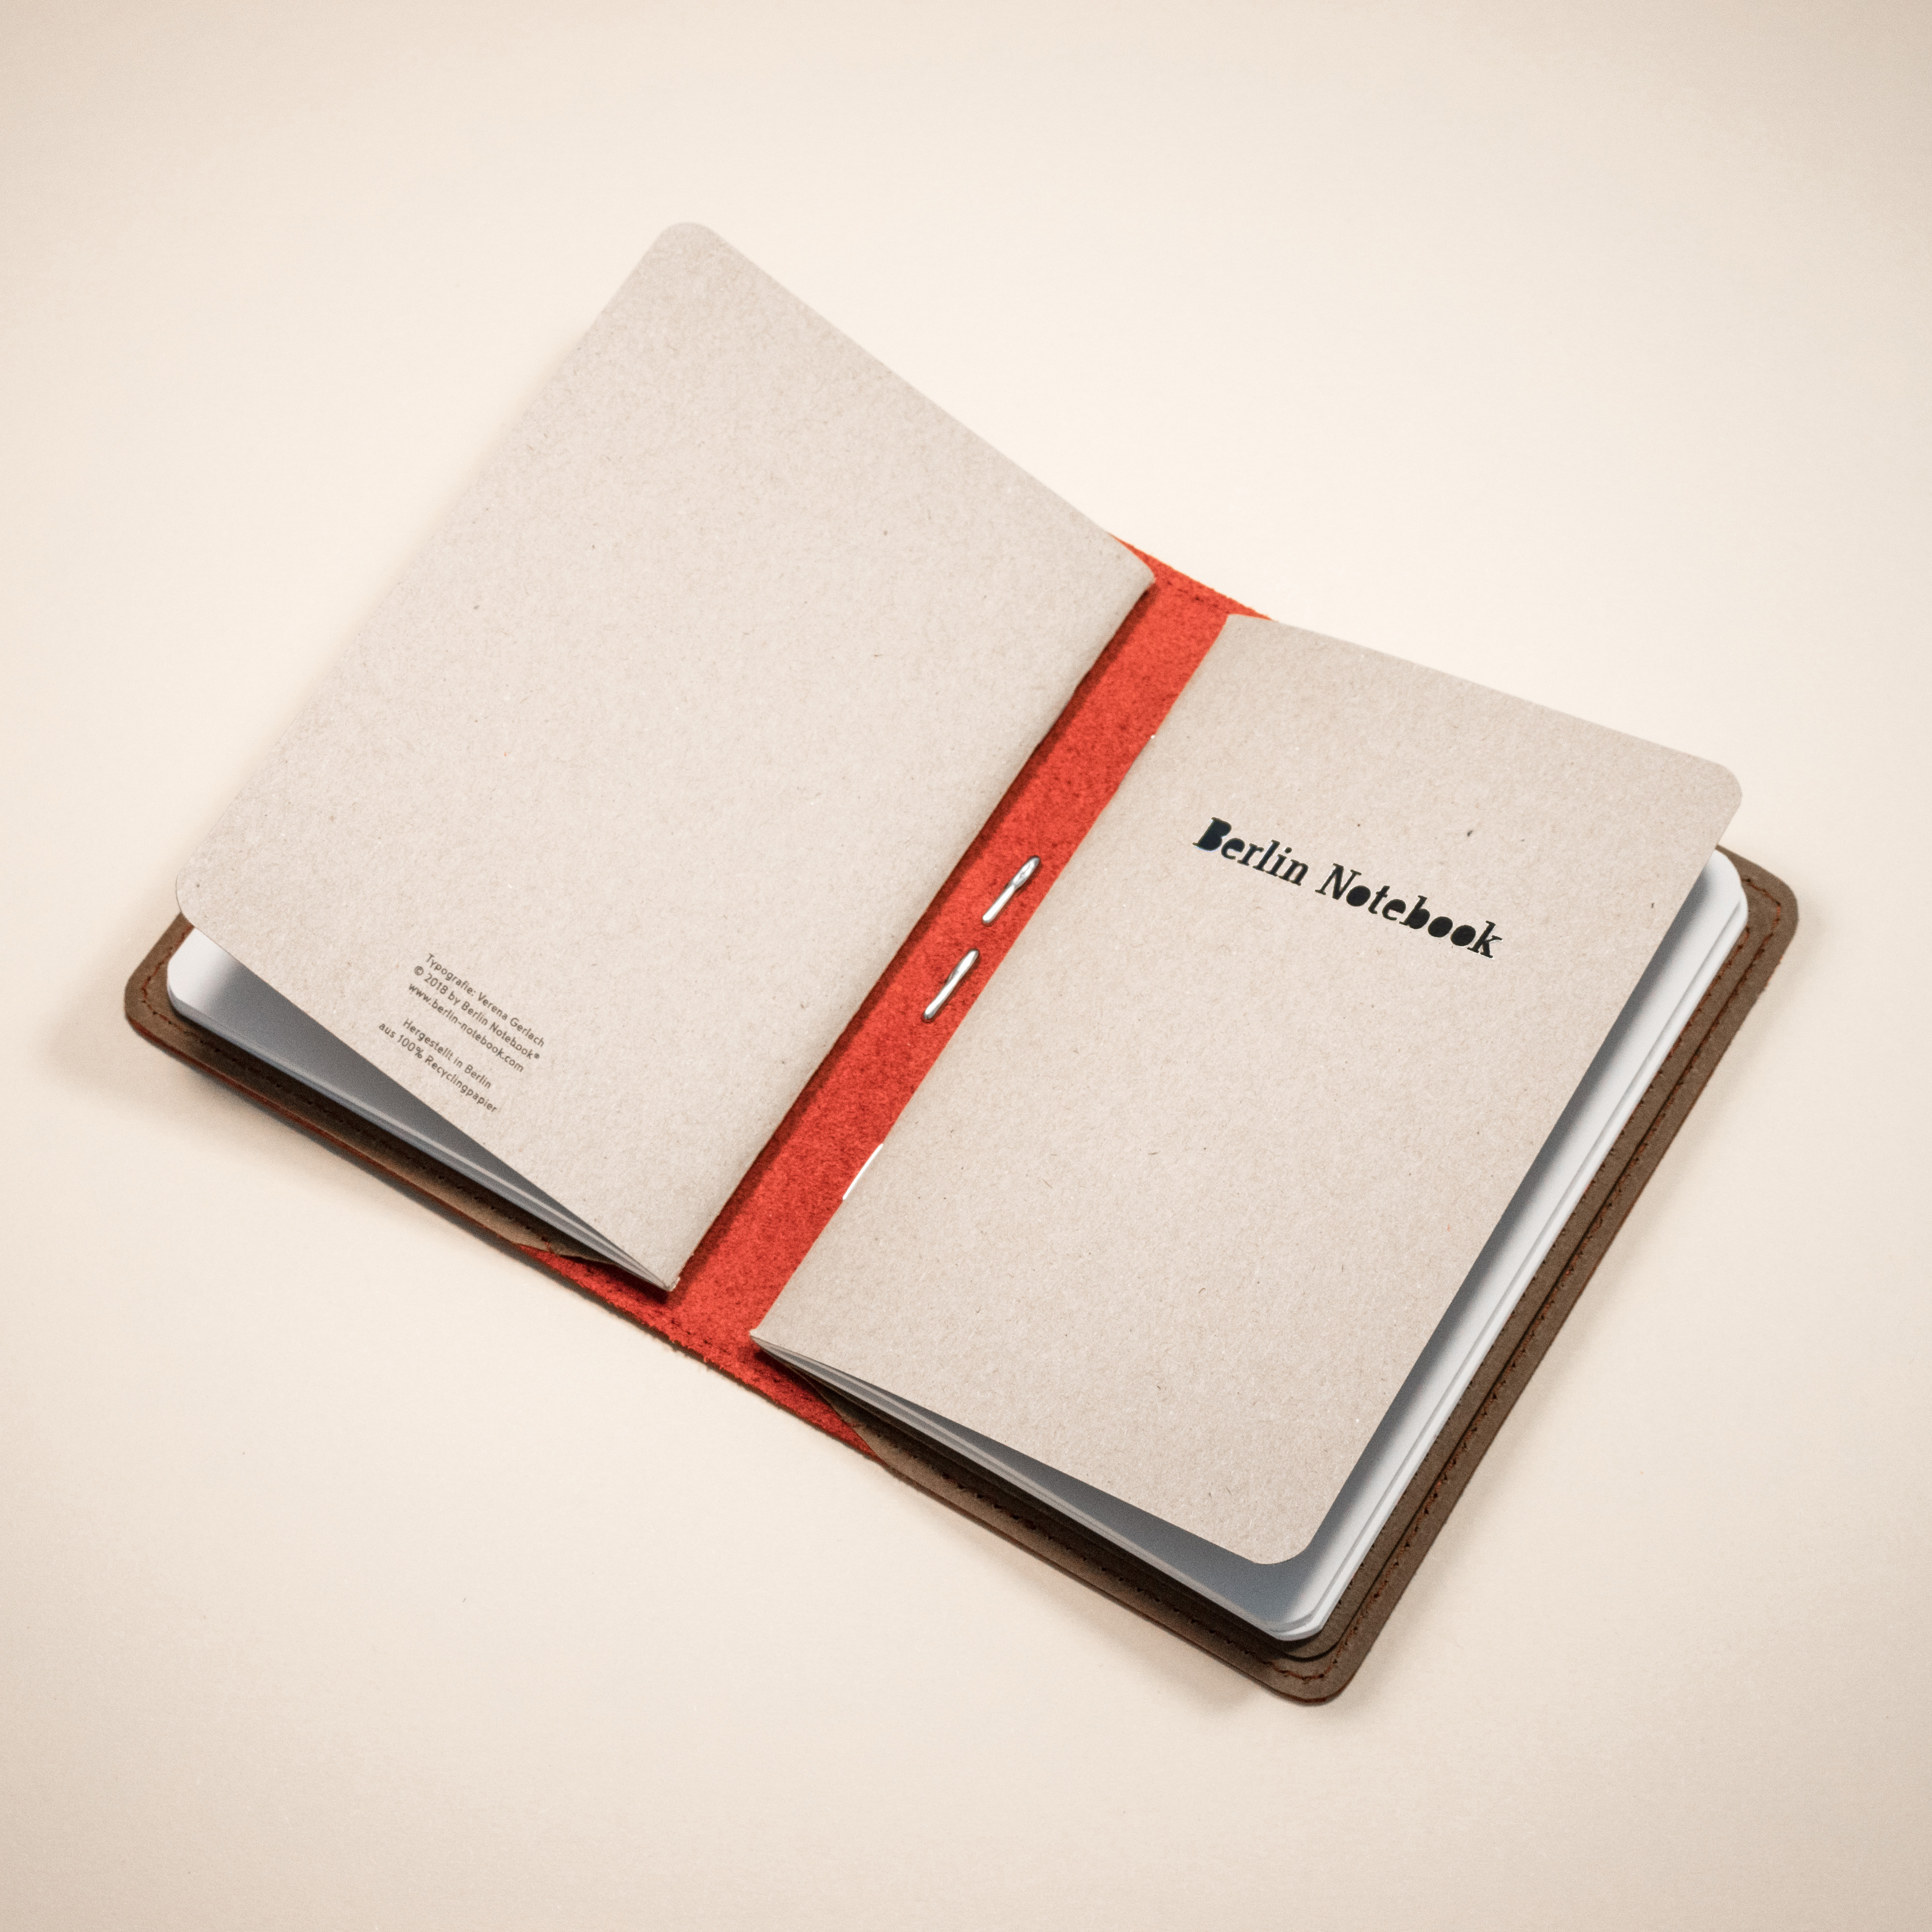 Berlin Notebook Leather Notebook Cover  - Olive Green